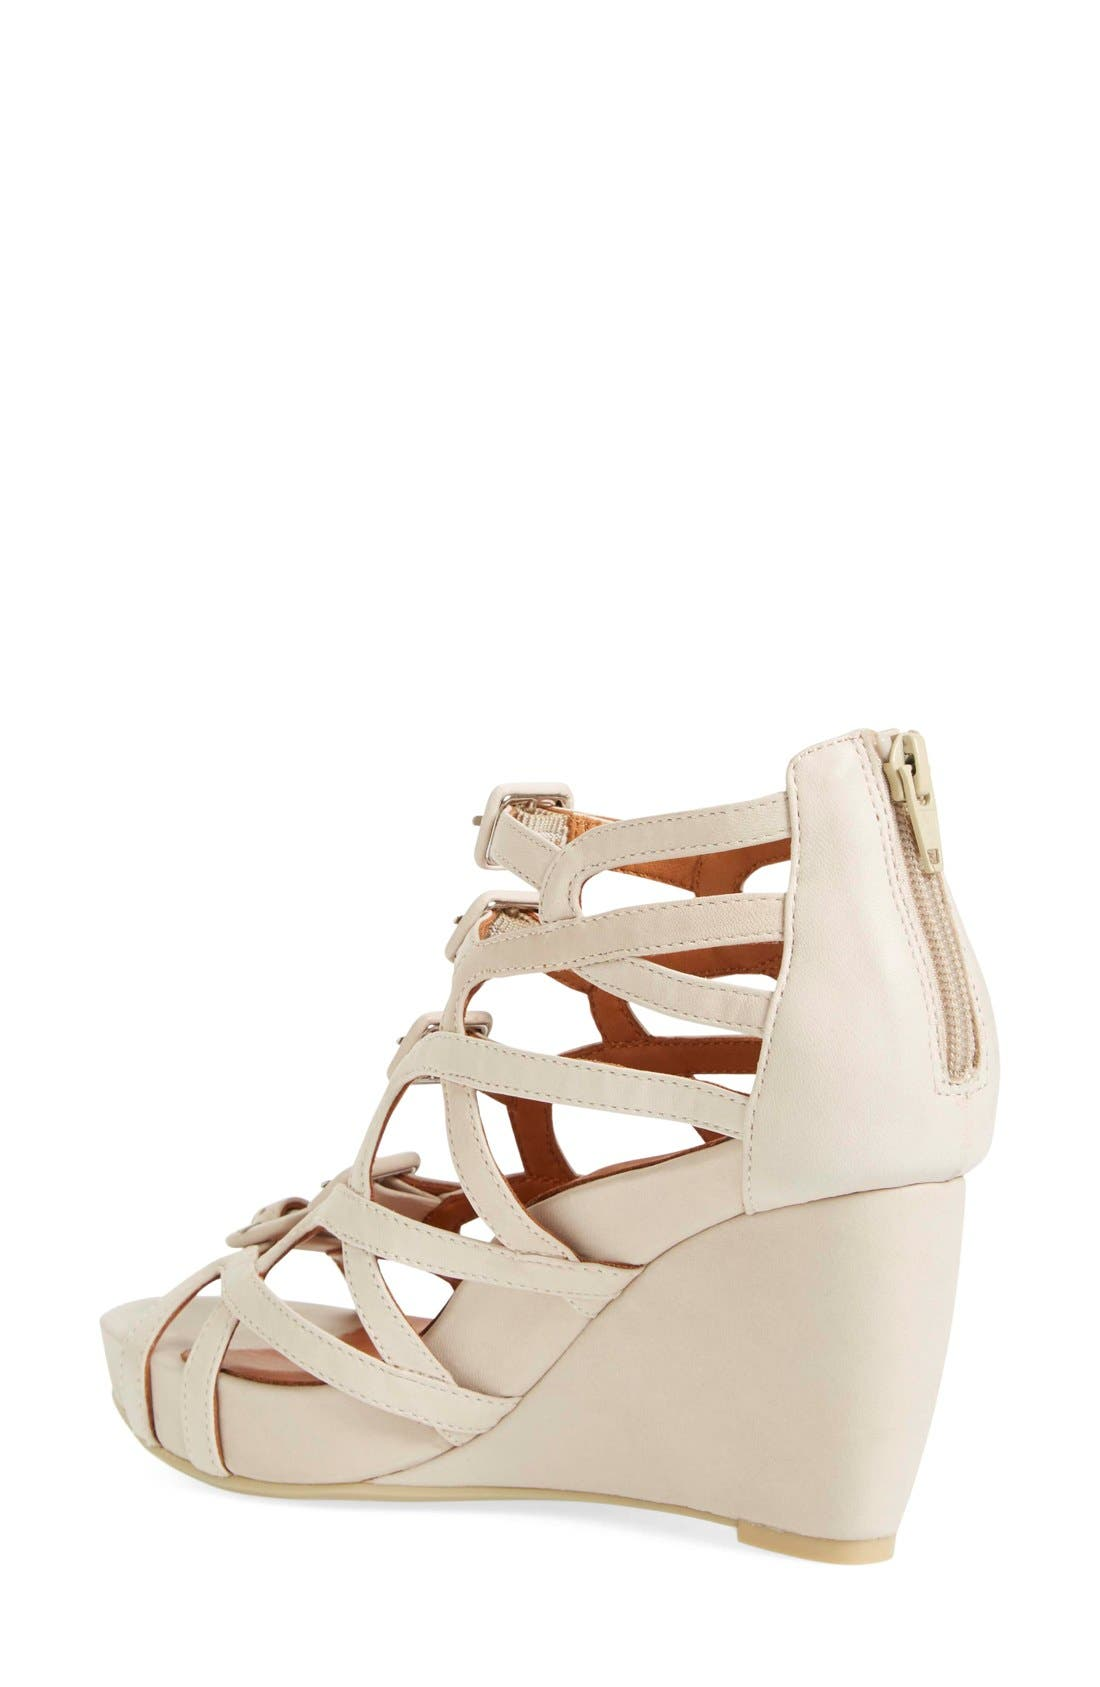 Ivanna' Gladiator Wedge Sandal,                             Alternate thumbnail 2, color,                             260